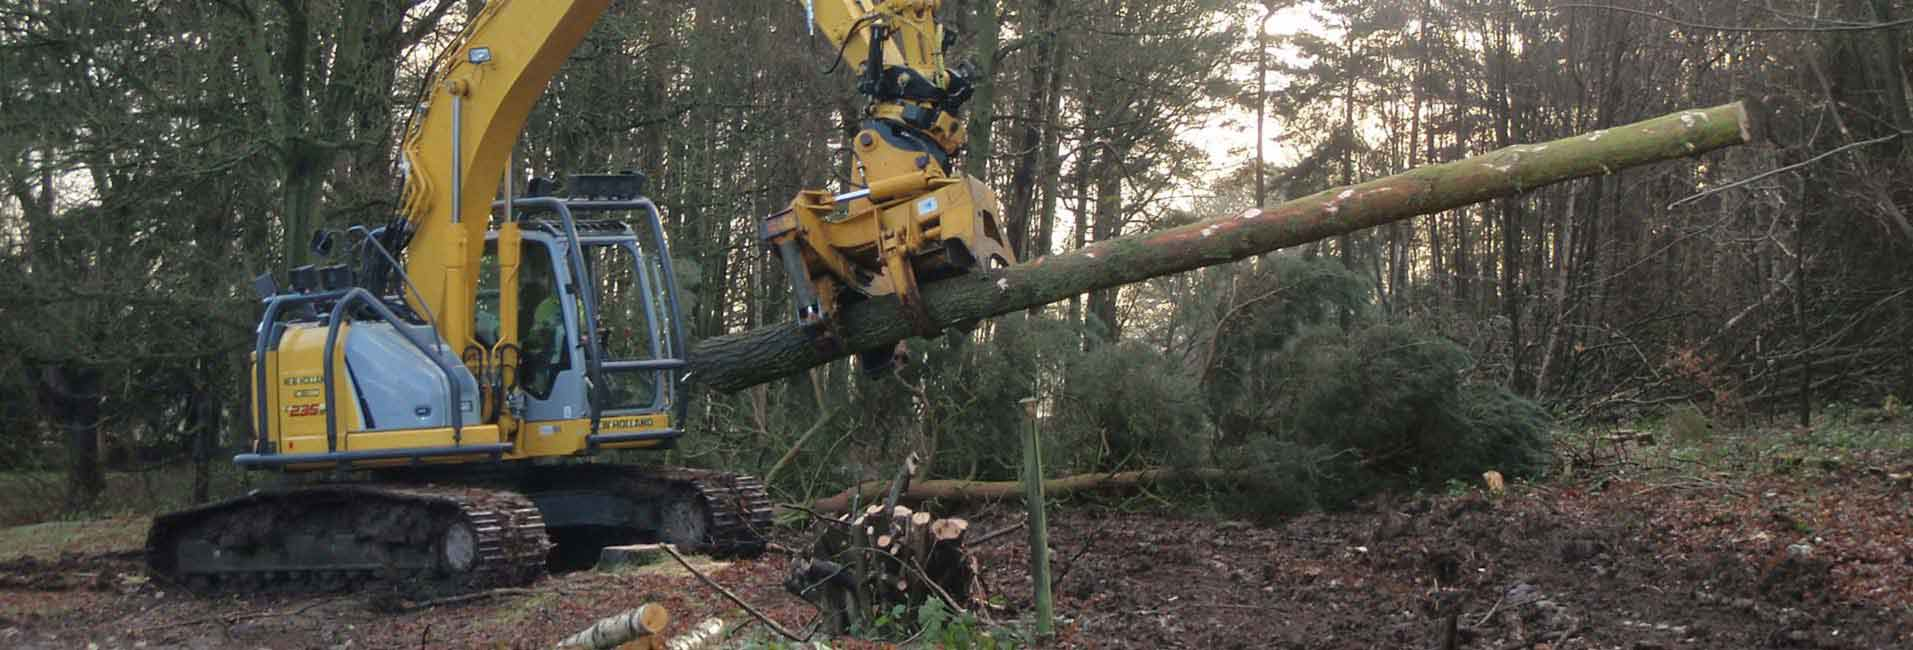 Stump Removal & Stump Grinding